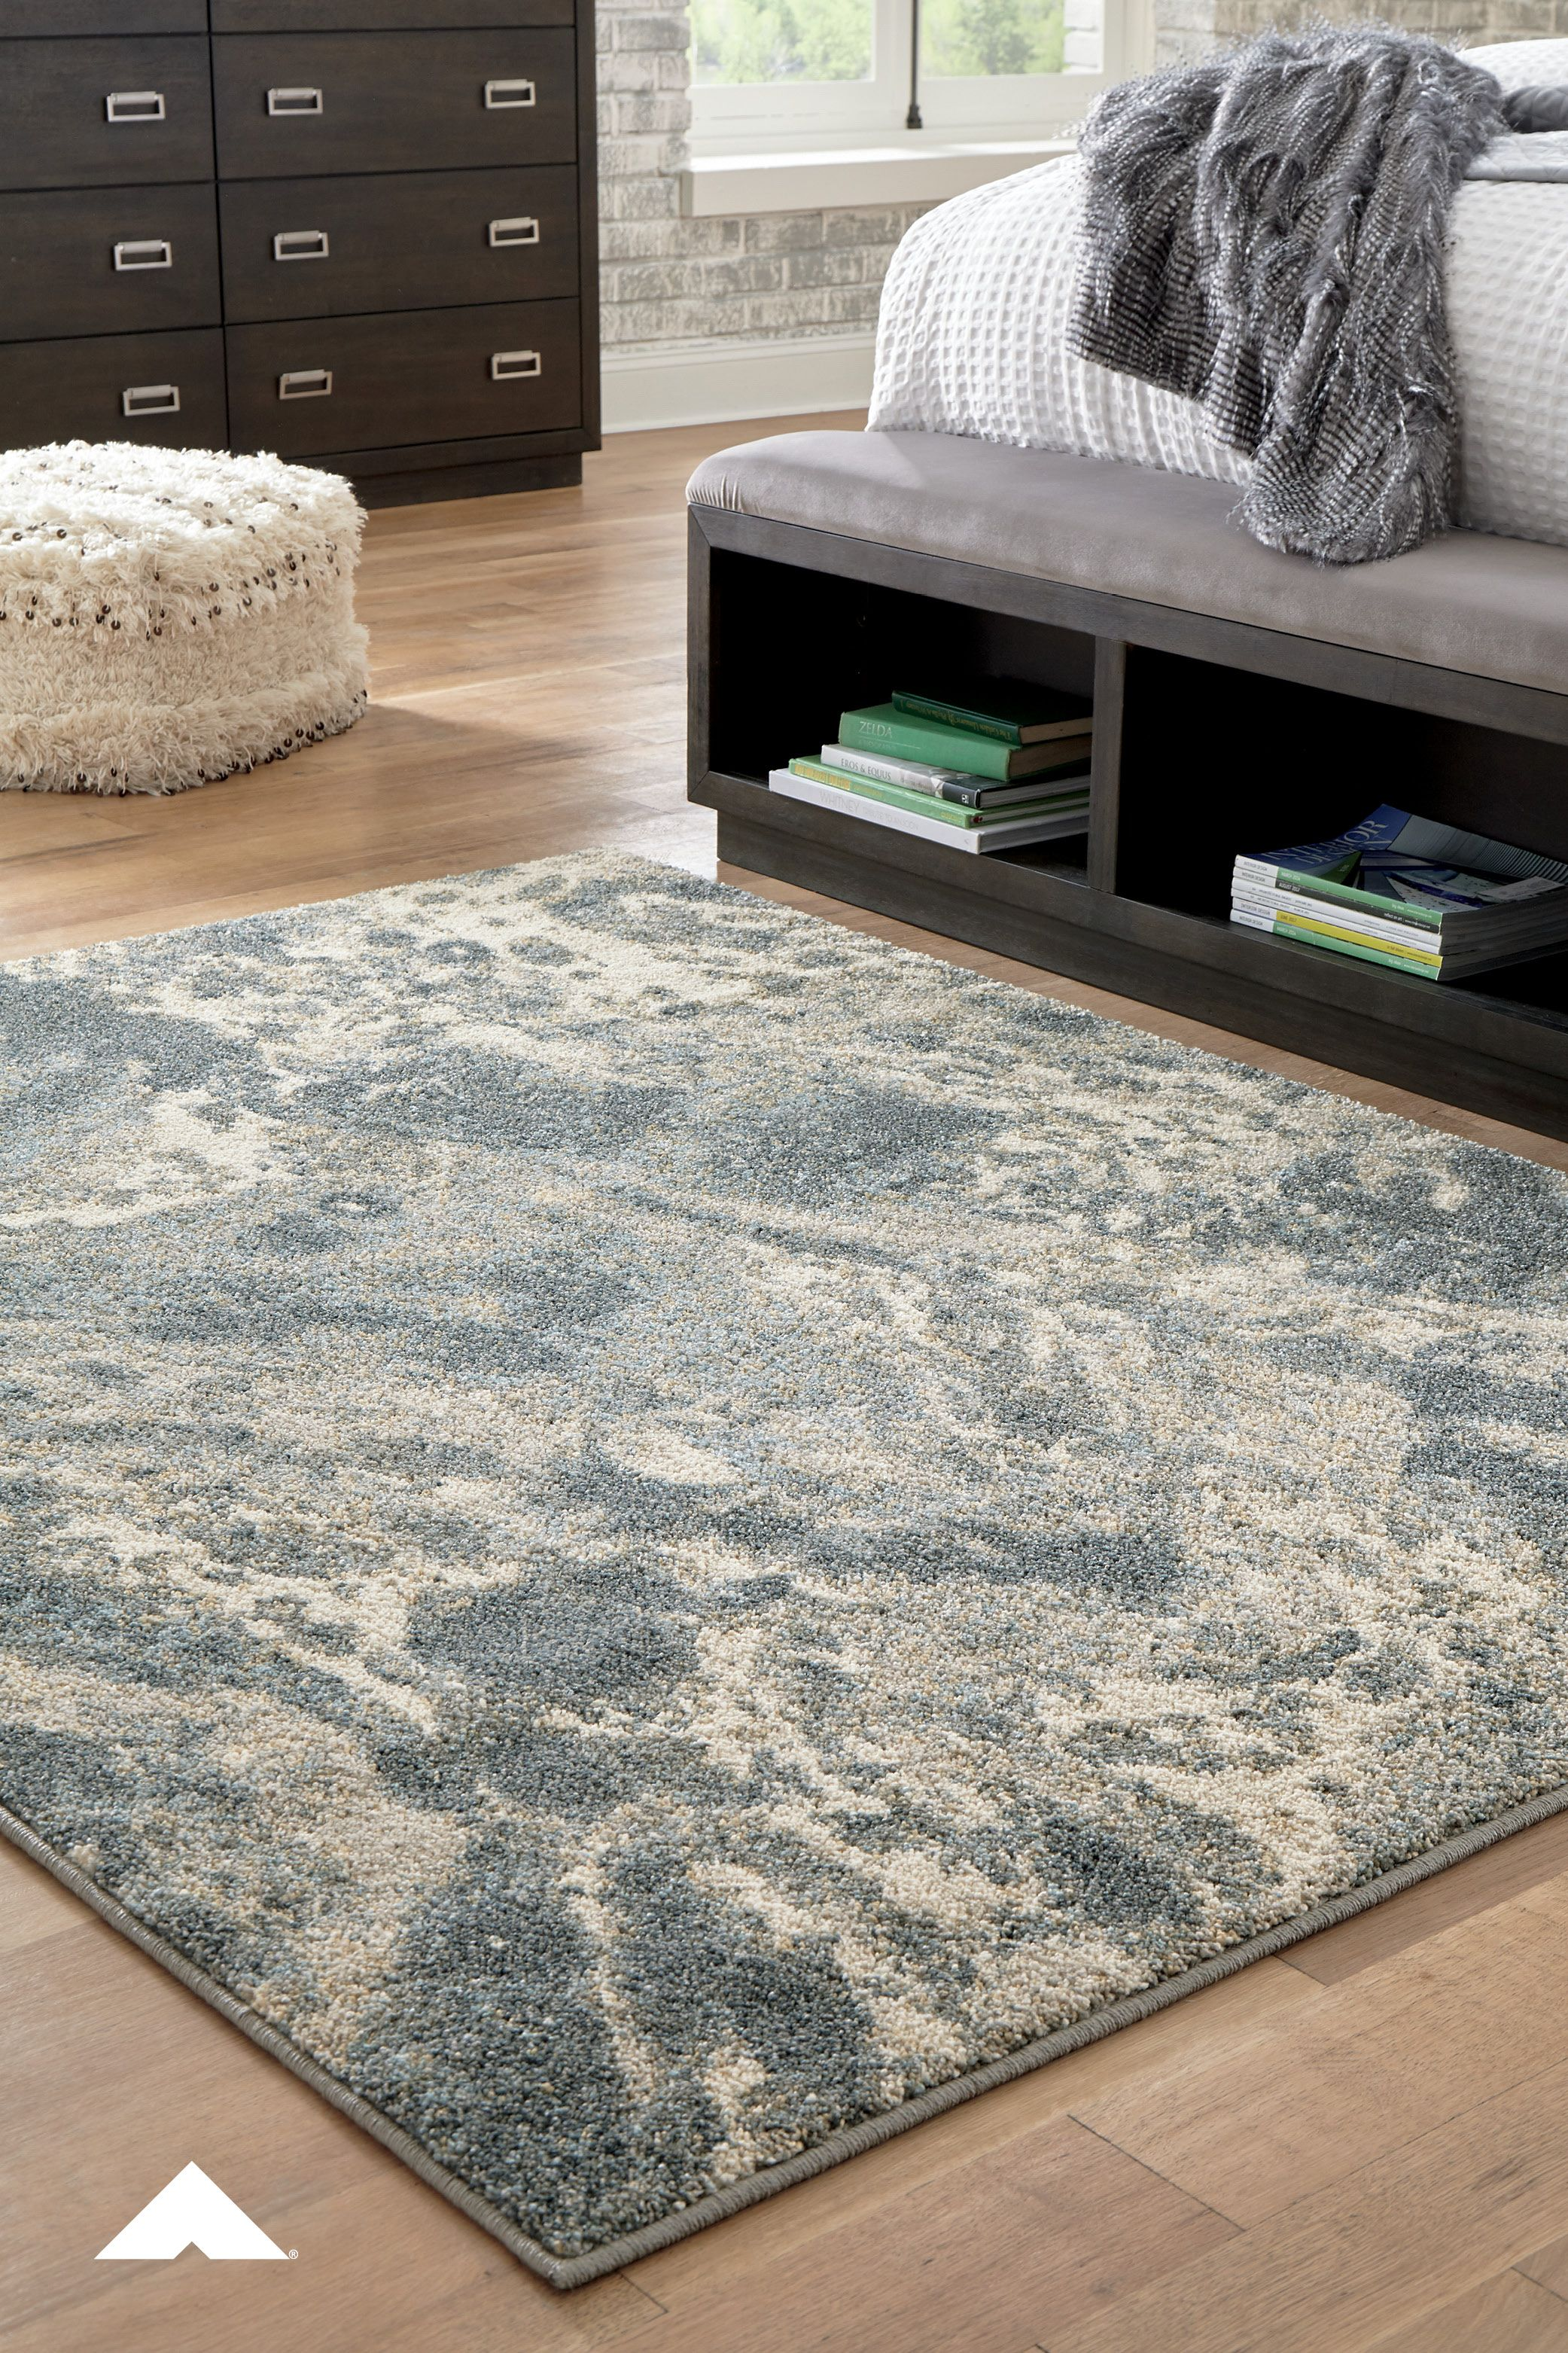 Jyoti Blue Gray Tan Medium Rug This Designer Accent Rug S Marbleized Design Is Something To Marvel Indeed Thi In 2020 Fall Furniture Large Rugs Glamour Living Room